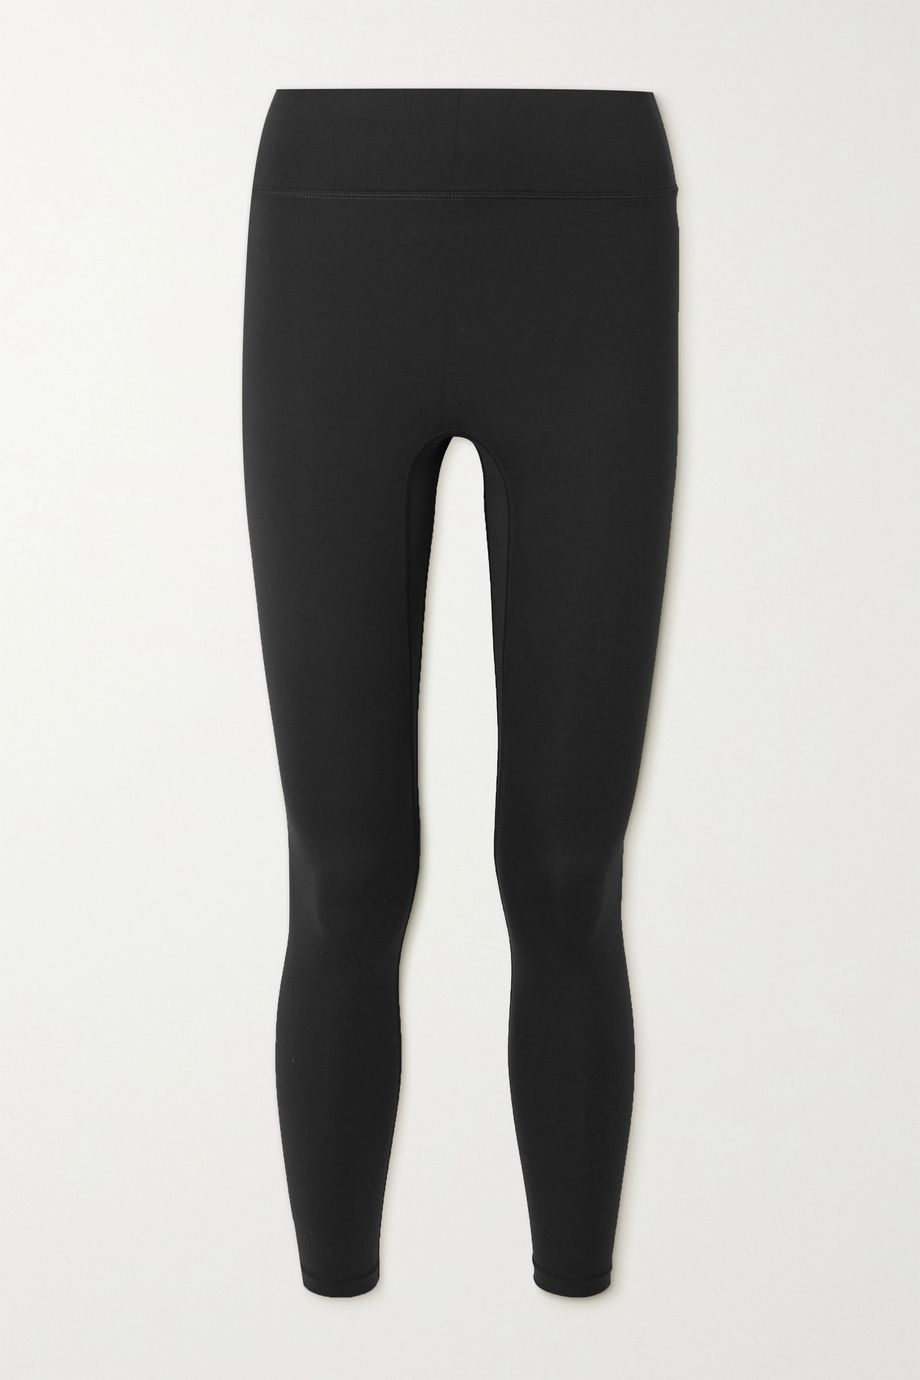 ALL ACCESS Center Stage stretch leggings